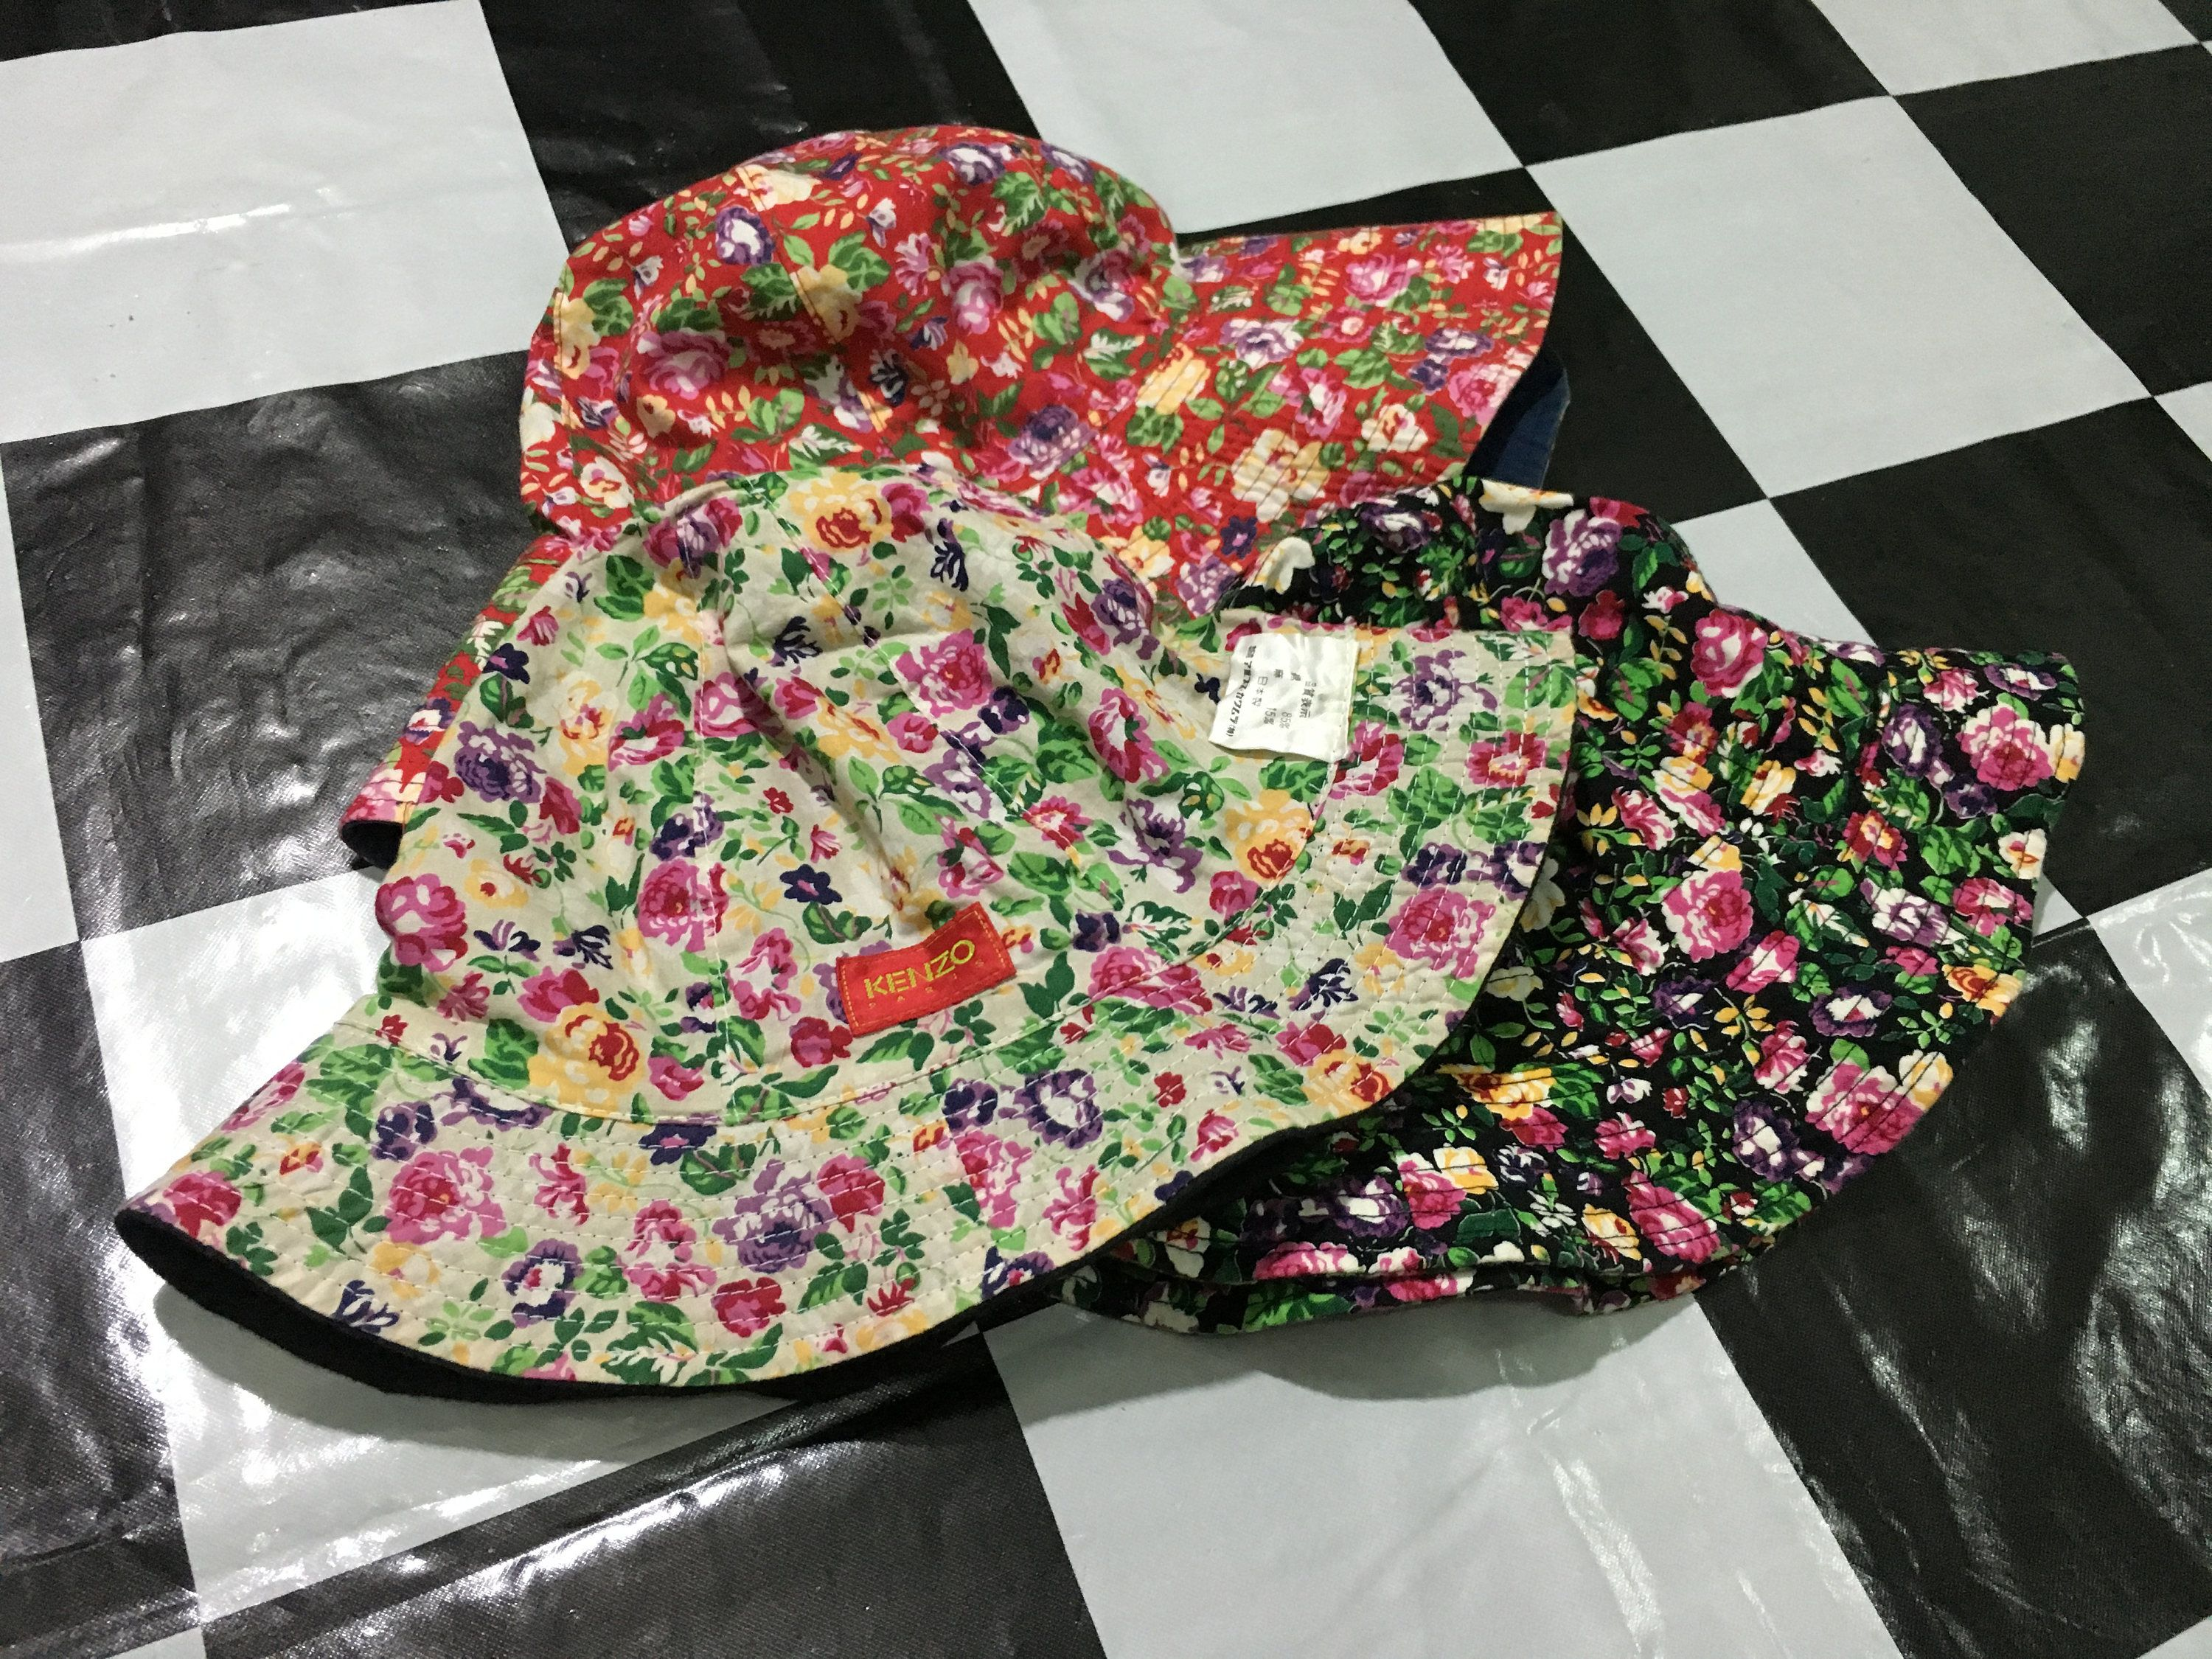 64be2c9d68b7a A lots of 3 Vintage Kenzo bucket hat floral cap by AlivevintageShop on Etsy